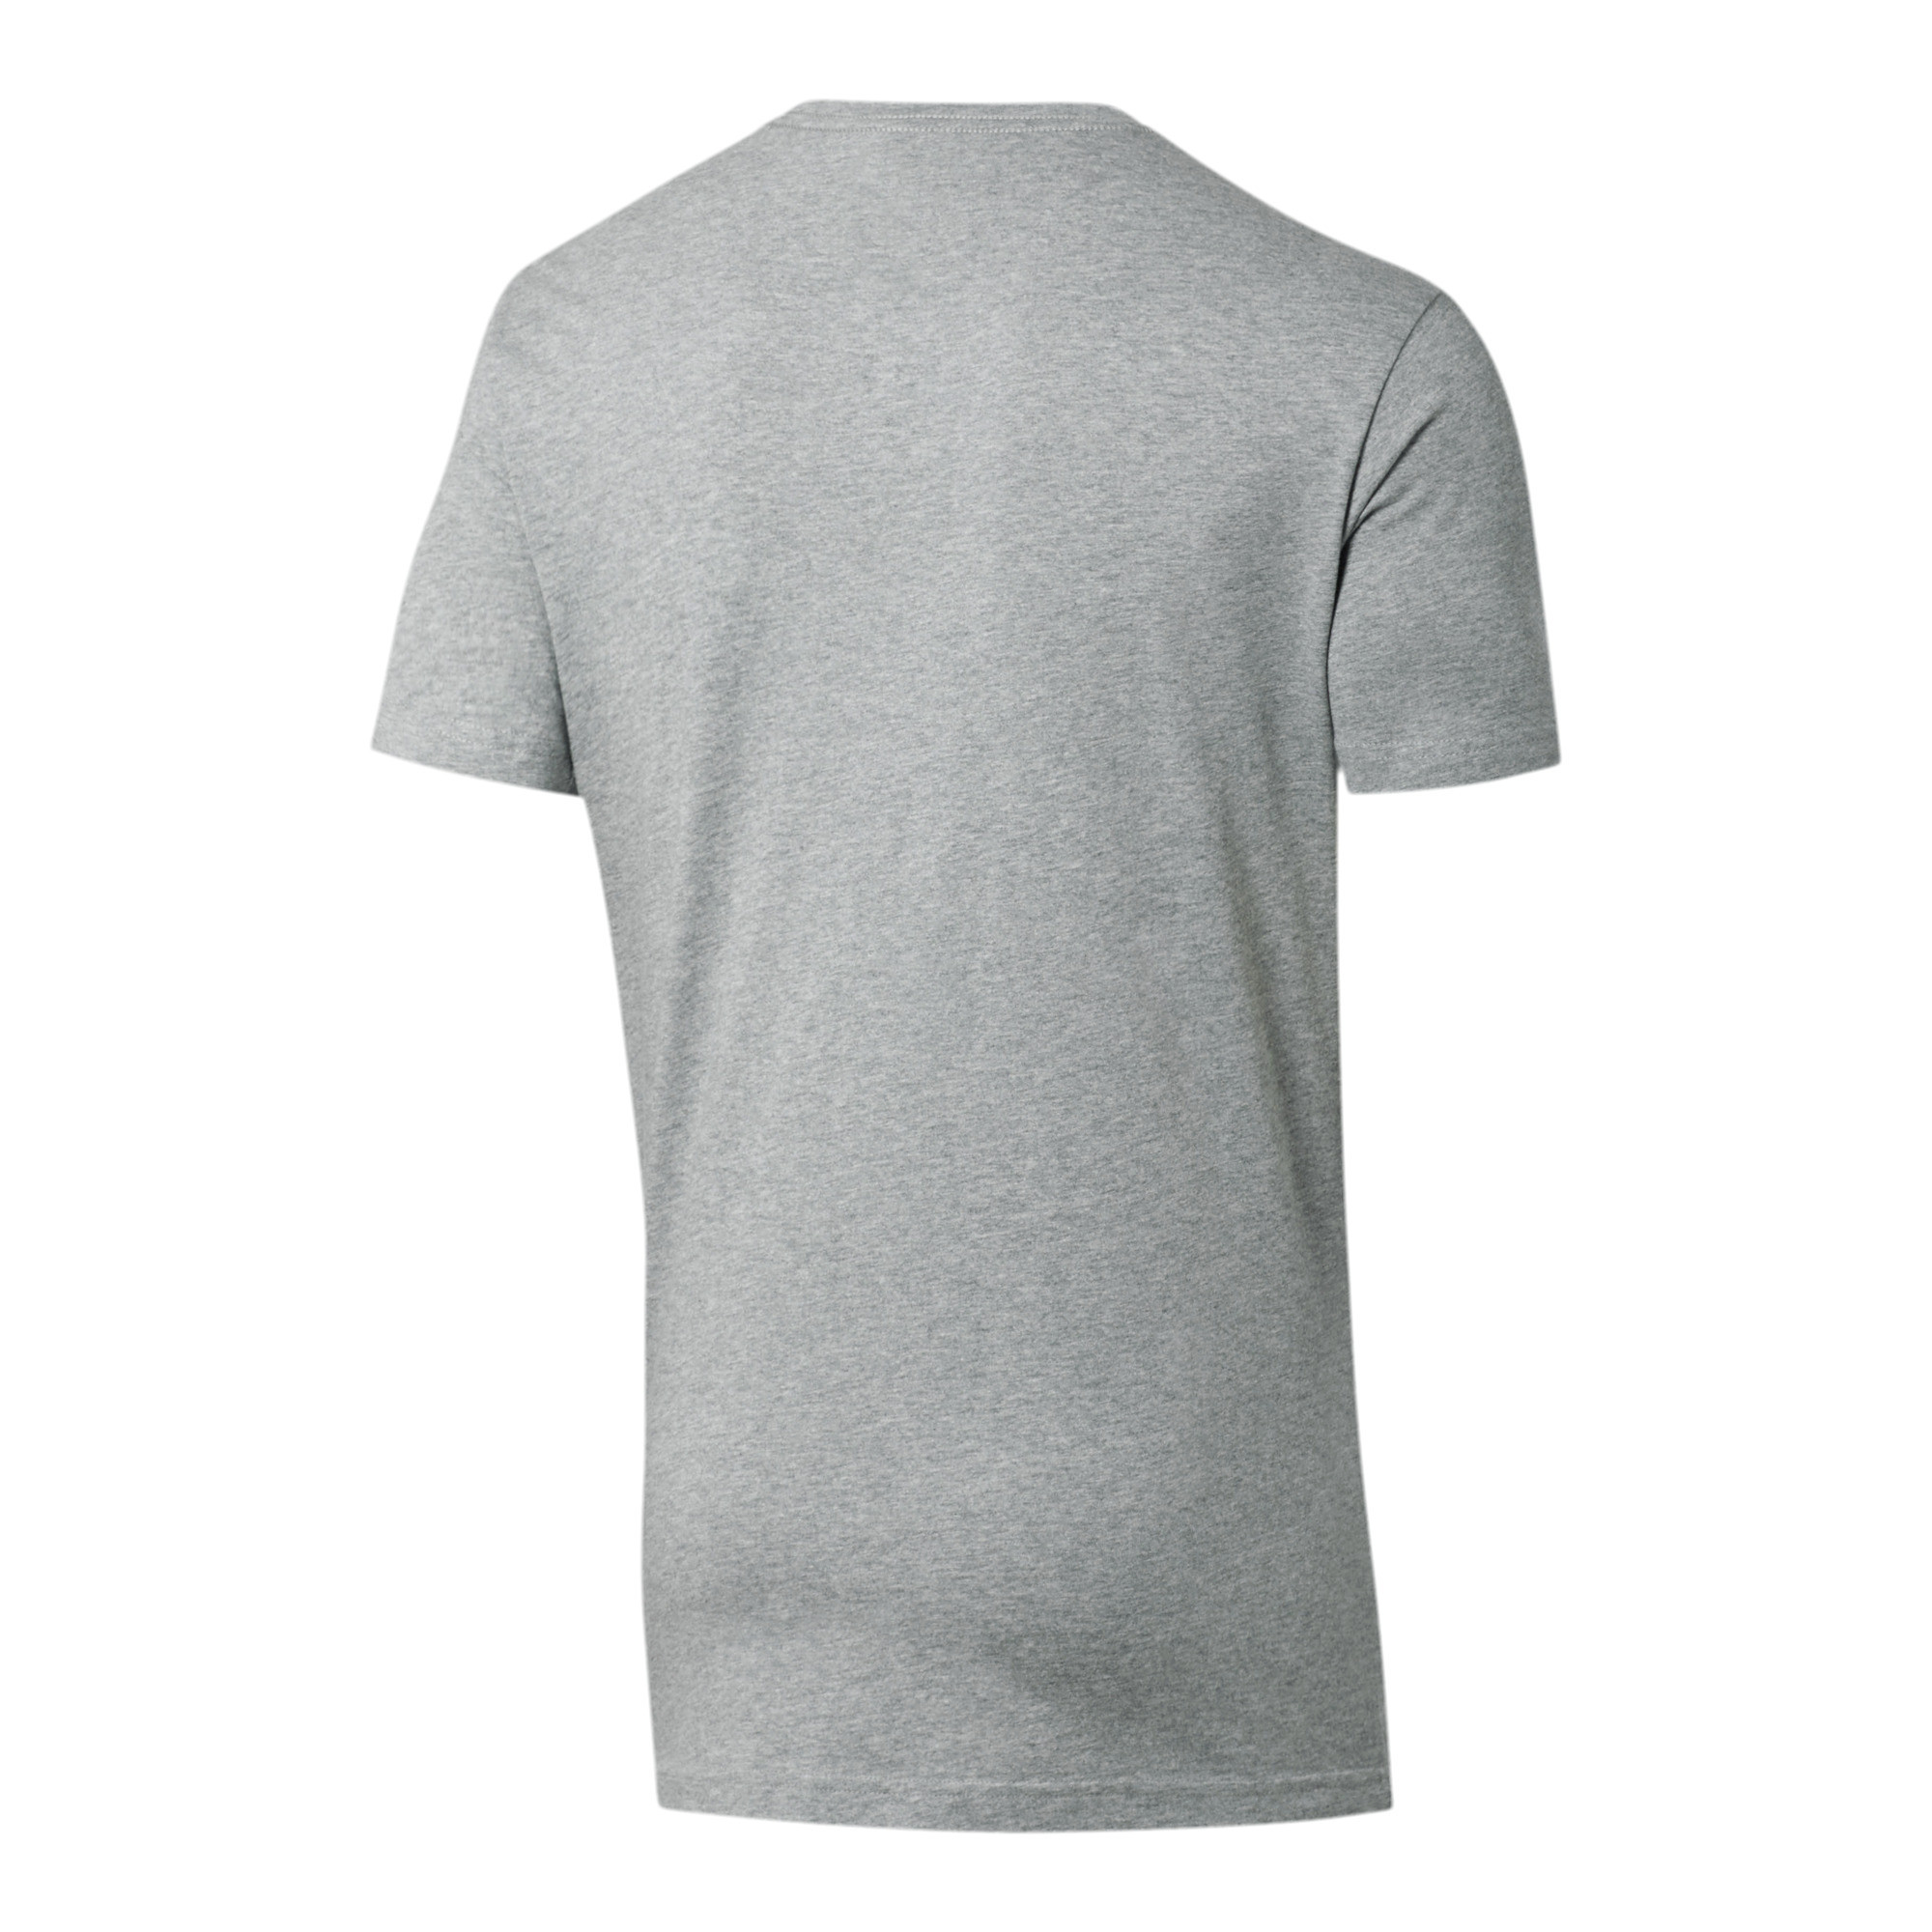 PUMA-Essentials-Men-039-s-V-Neck-Tee-Men-Tee-Basics thumbnail 14